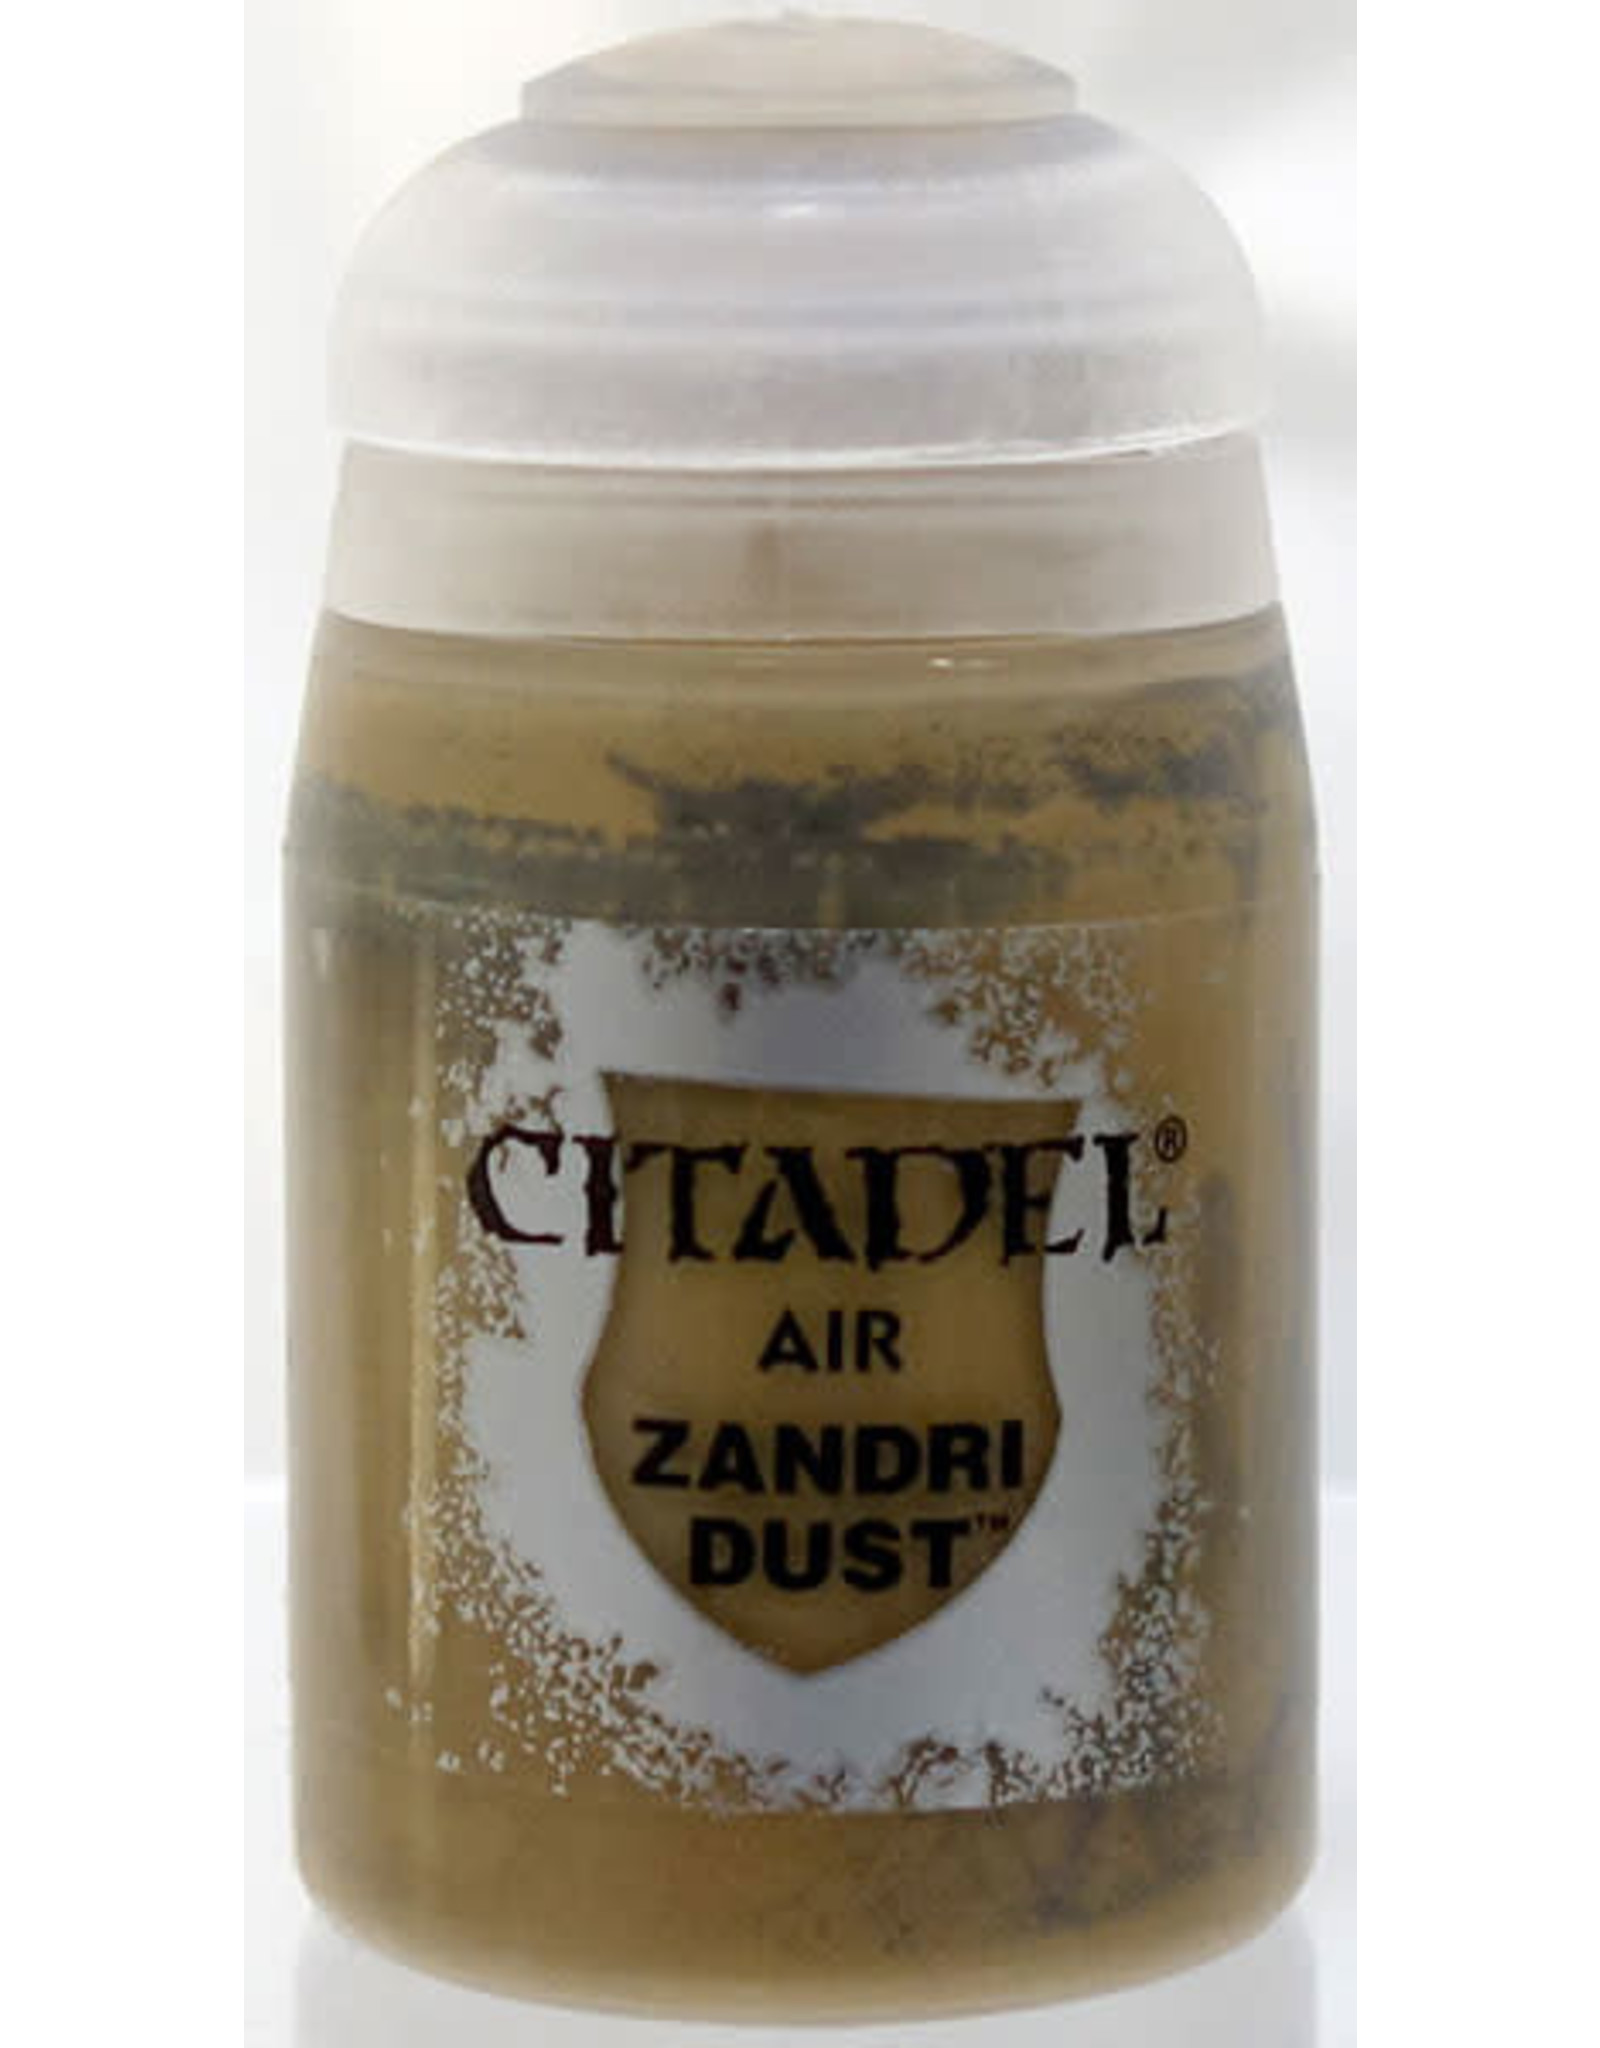 Games Workshop Citadel Paint: Zandri Dust Air (24 ml)